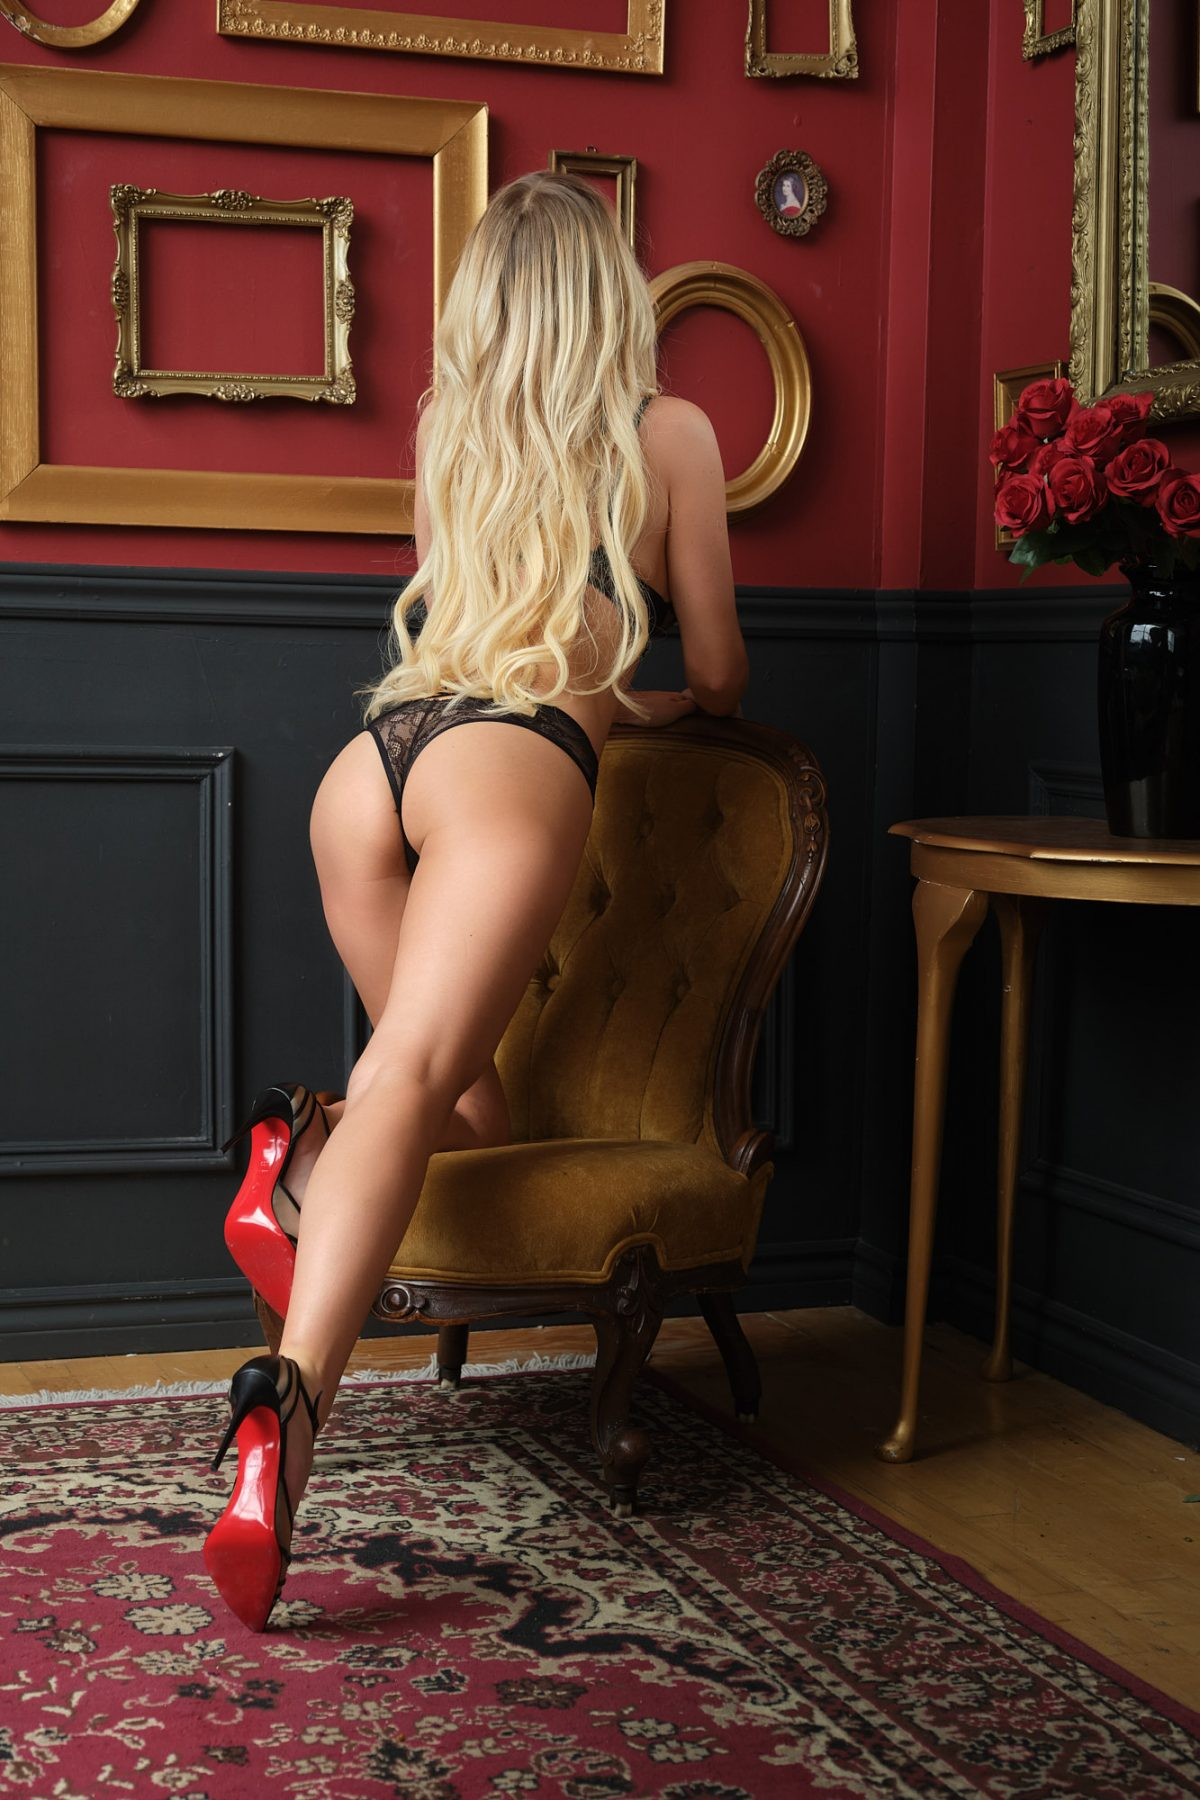 Toronto escorts companion upscale Natalie Interests Duo Non-smoking Age Mature Figure Slender Petite Breasts Natural Hair Blonde Ethnicity European Tattoos None Arrival New Photos New